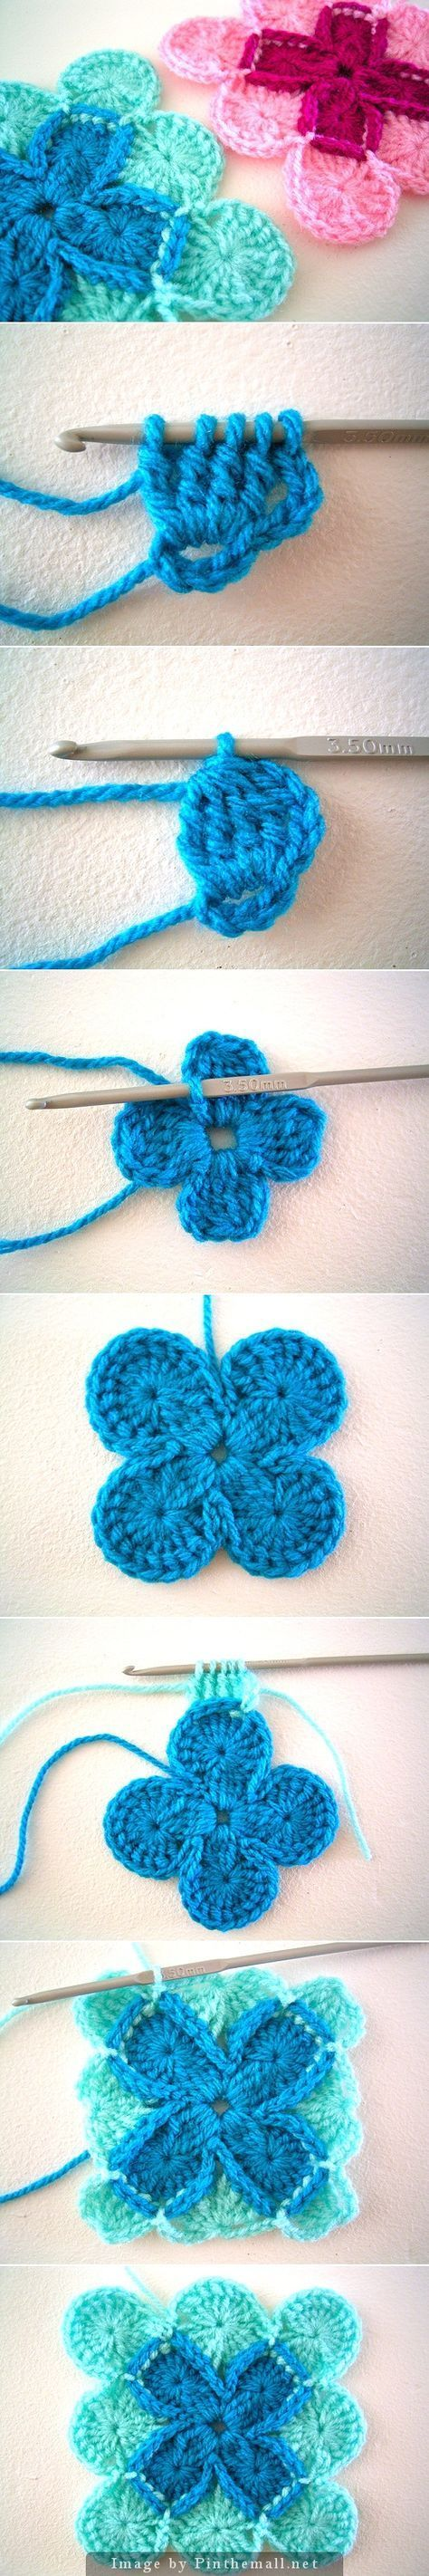 """#Crochet_Tutorial for """"Bavarian Crochet. Complete instructions with text at Sarah London's blog. Click on the source to get the pattern."""" Enjoy your crochet from #KnittingGuru ** http://www.pinterest.com/KnittingGuru"""